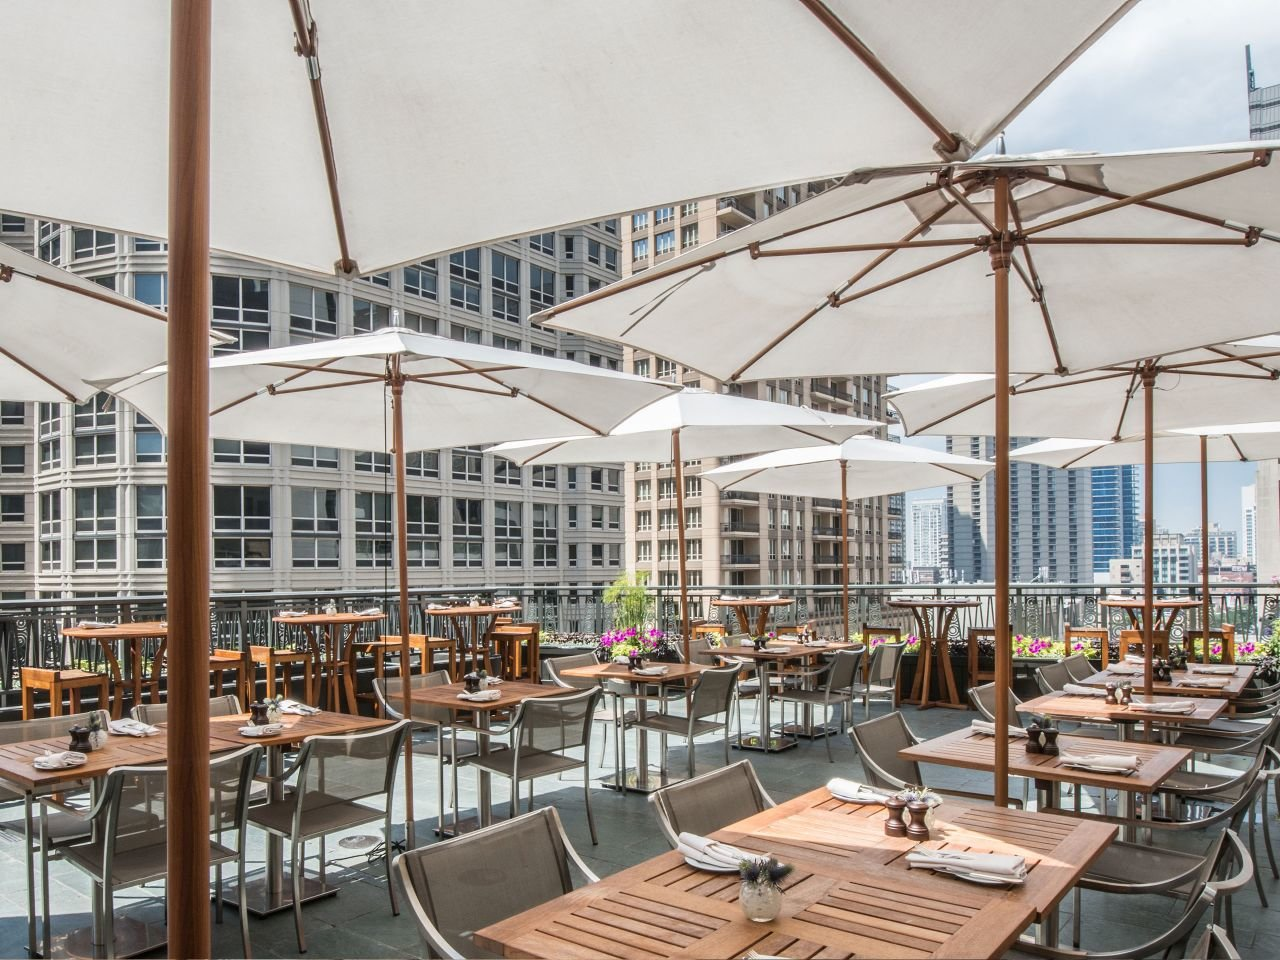 best rooftop bars chicago, chicago bars, chicago rooftop bars, rooftop bar, rooftop restaurants chicago